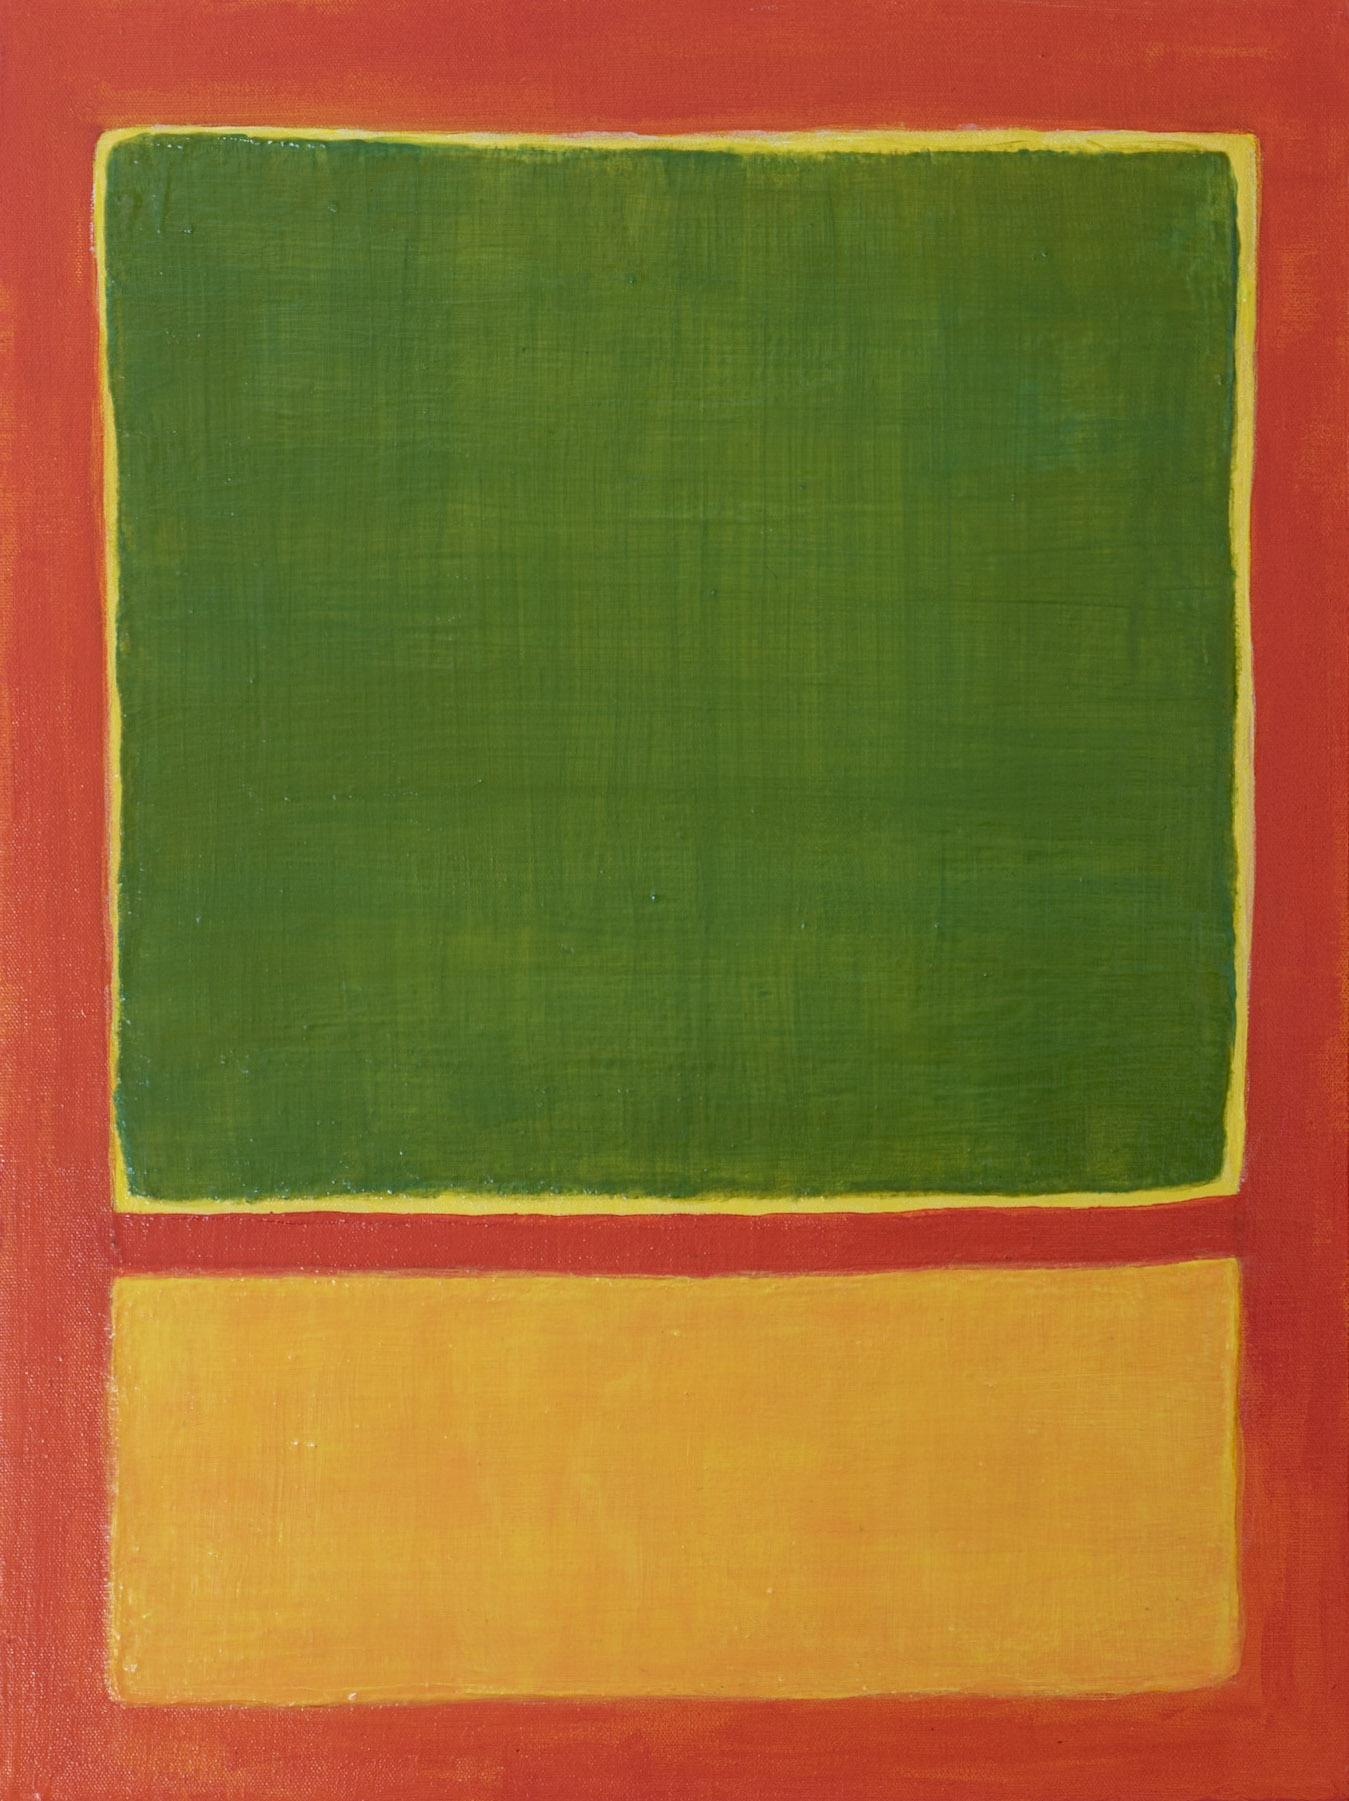 Inspired by Rothko, No.14, 1955